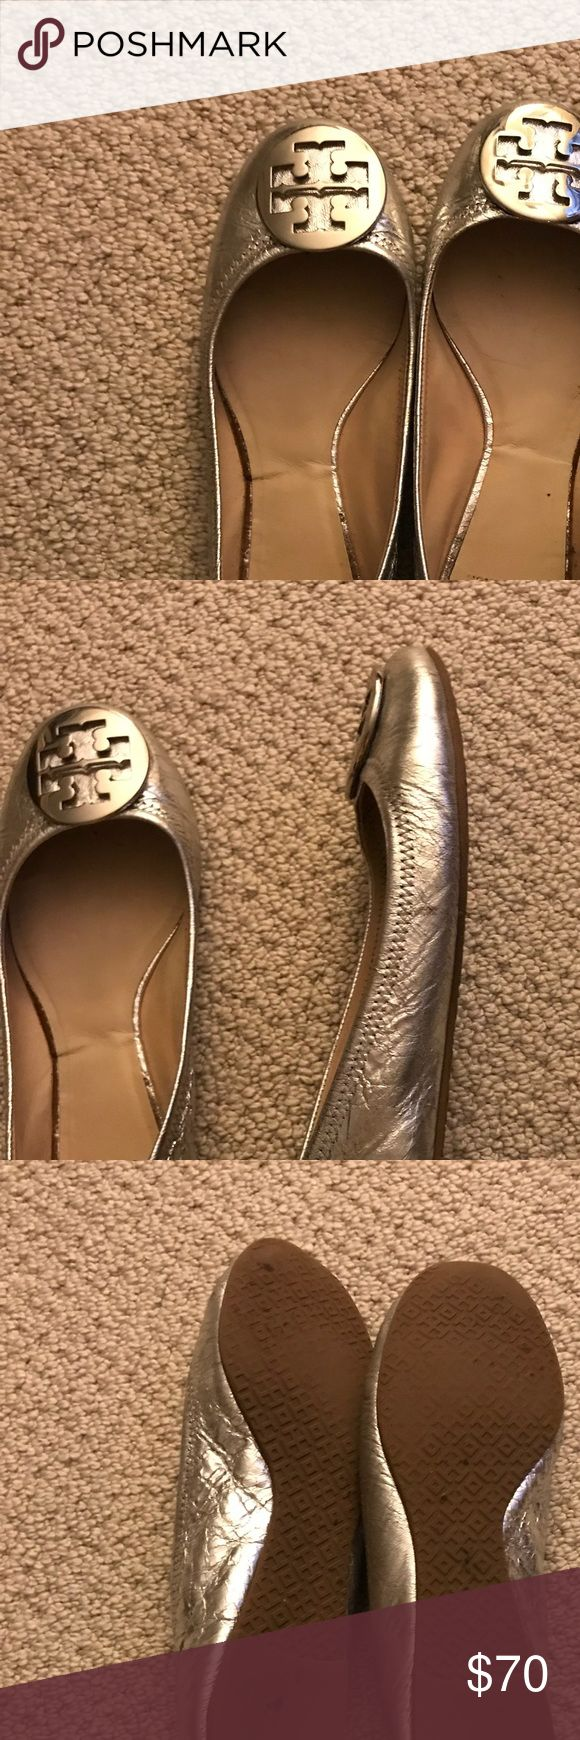 Tory Burch silver reva size 9 New style reva flats (with no scrunchy back - much more comfortable!) super cute crackled silver leather. Worn a few times with a few scratches on hardware. Not noticeable when worn! Leather is in great shape! Tory Burch Shoes Flats & Loafers